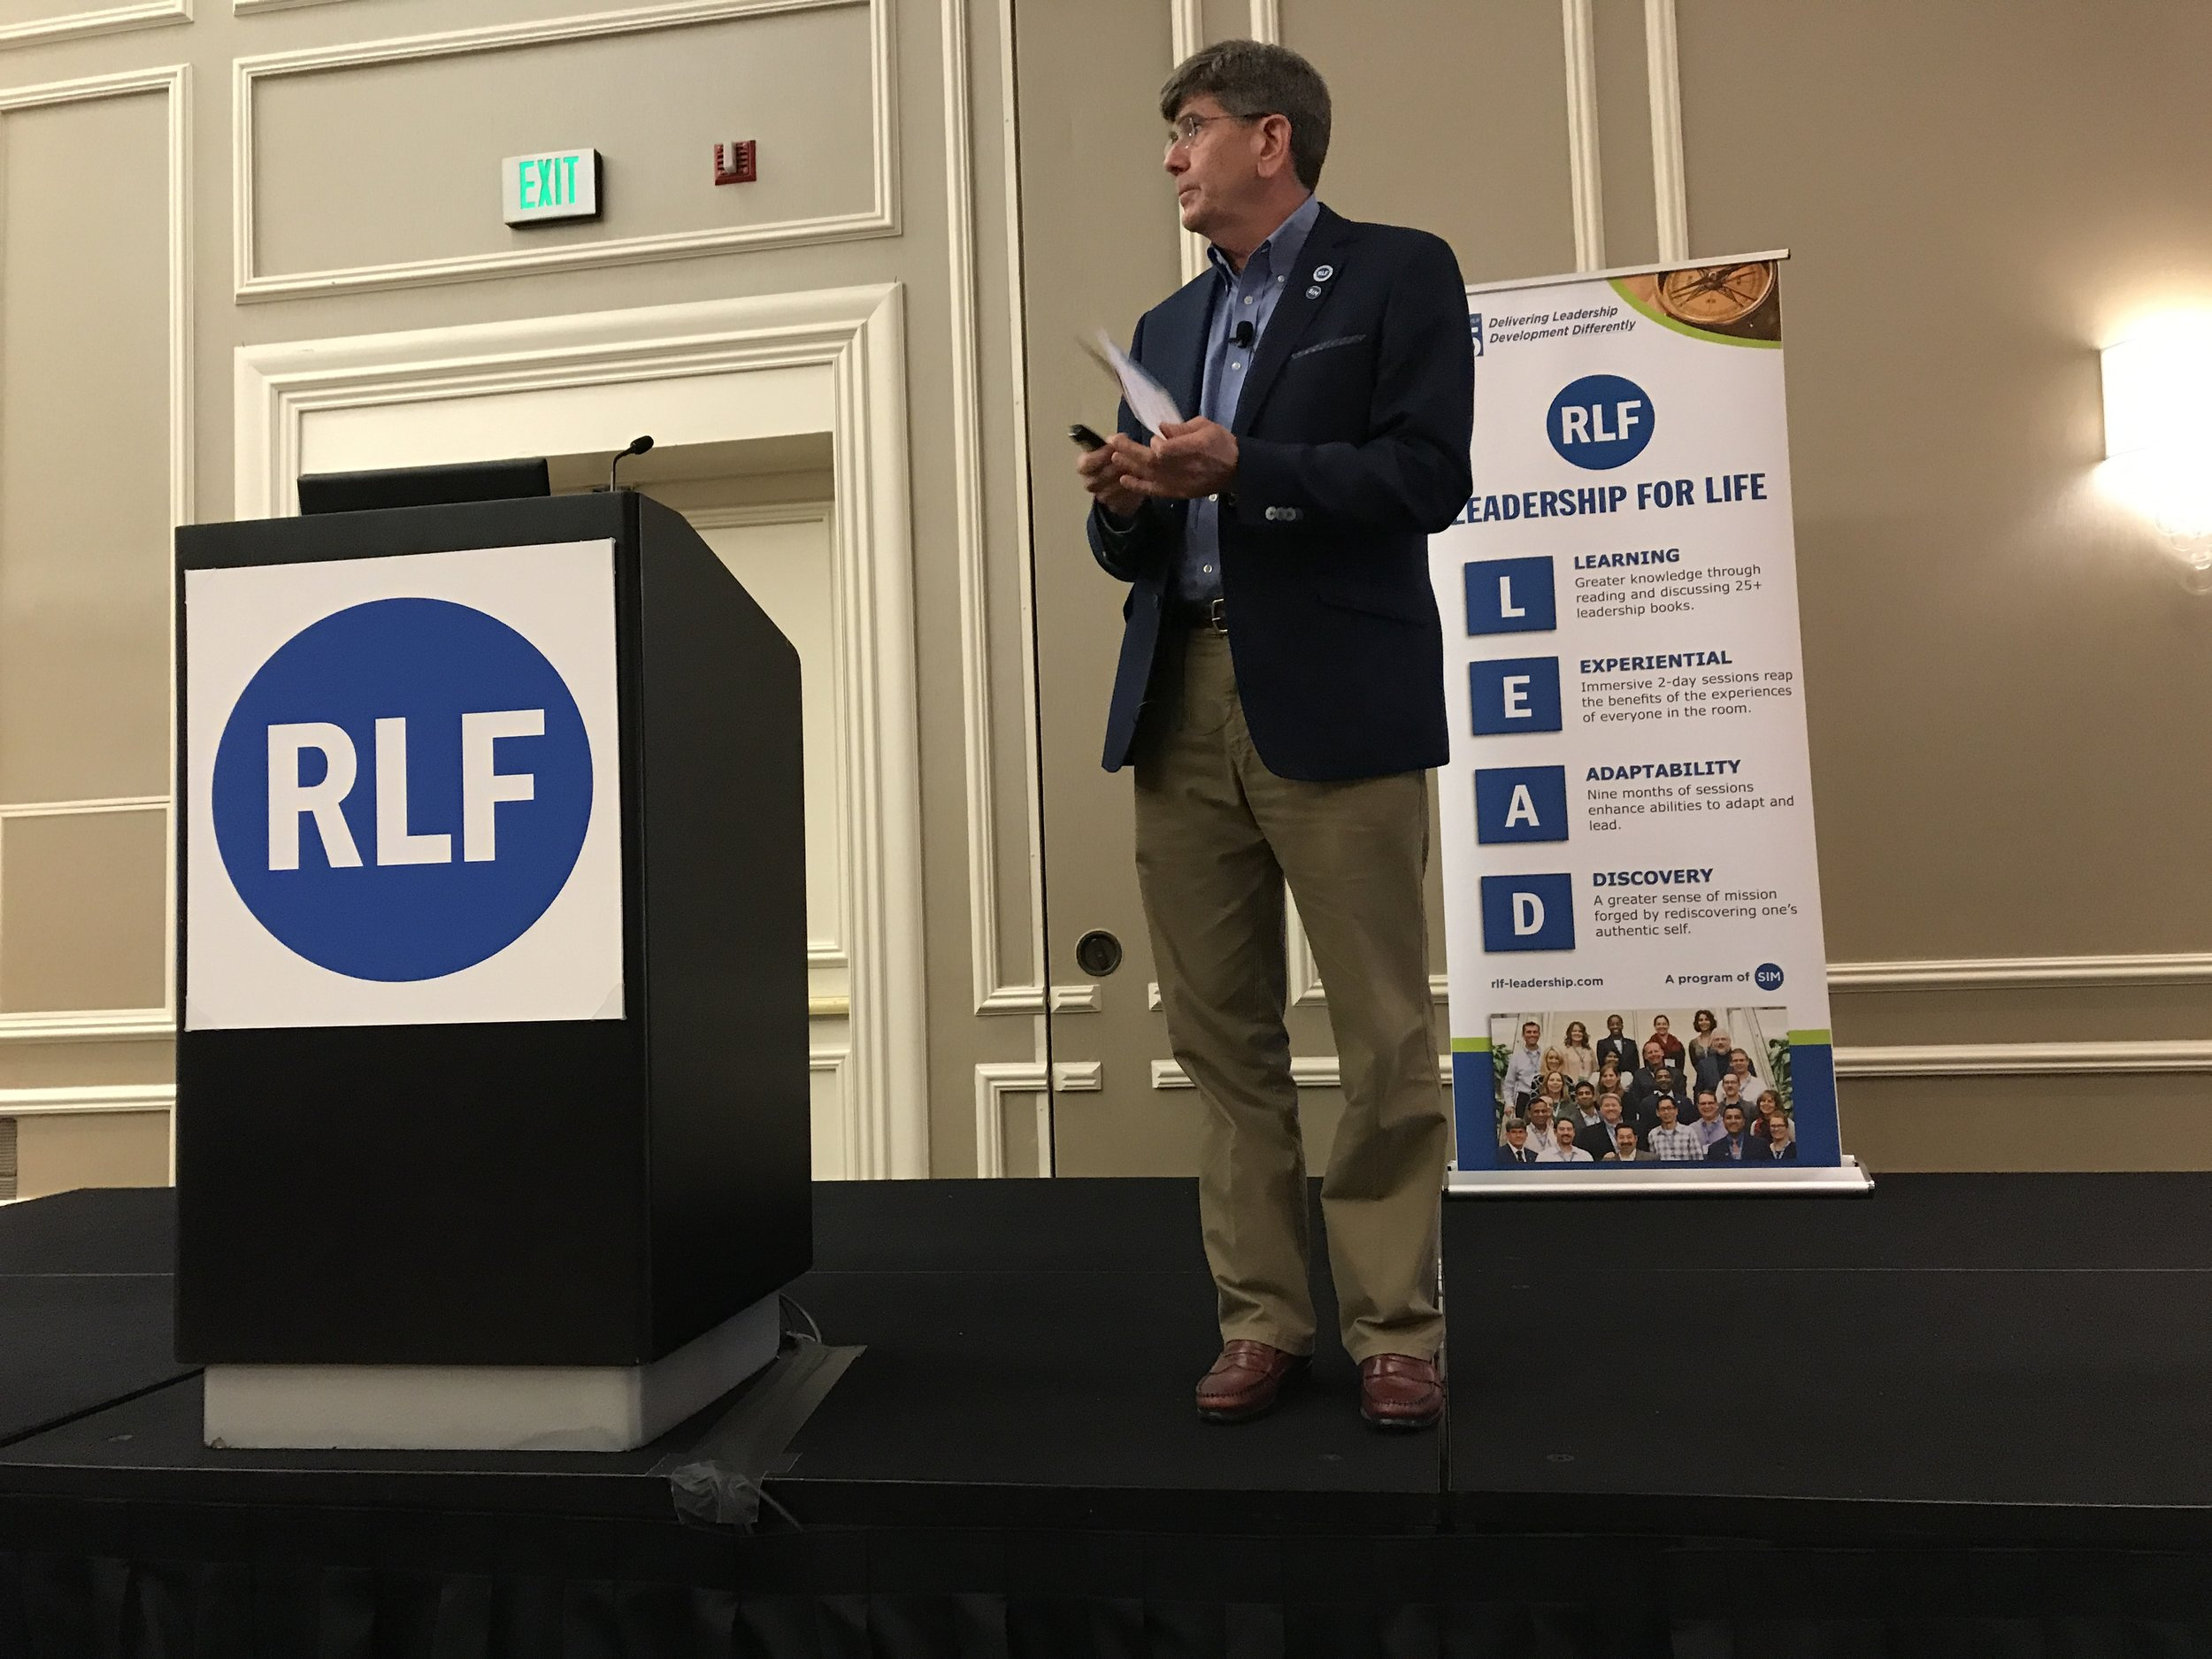 Kevin Ryan, RLF Director and Facilitator, served as master of ceremonies during the RLF Graduation Celebration for 2018 graduates on May 15, 2019.